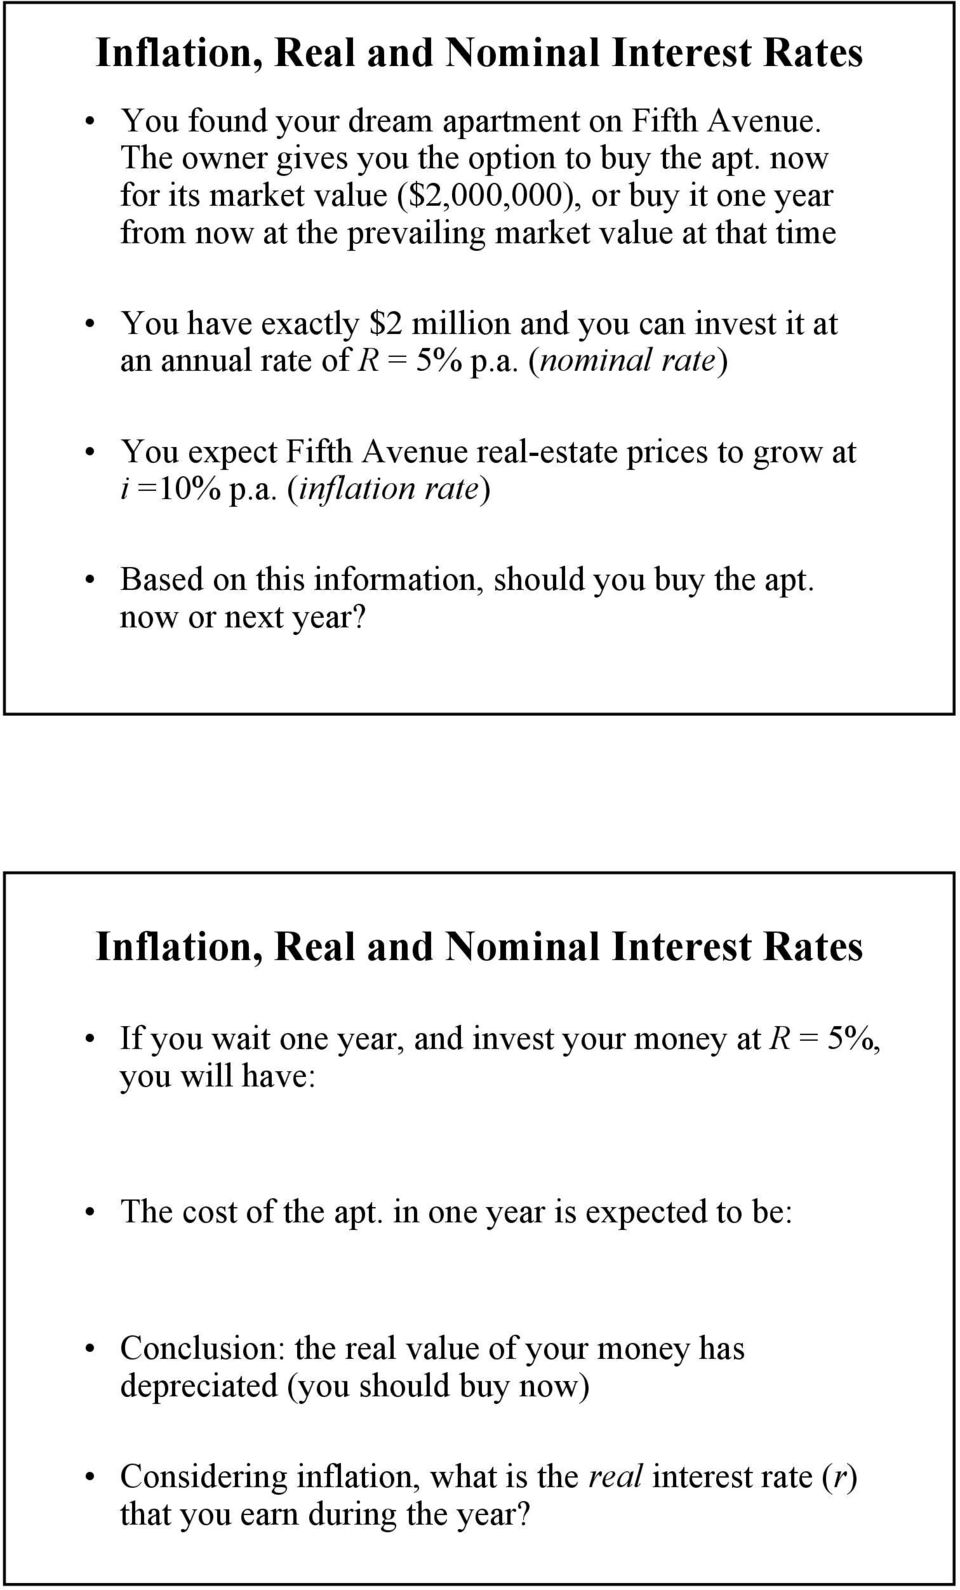 a. (inflation rate) Based on this information, should you buy the apt. now or next year?